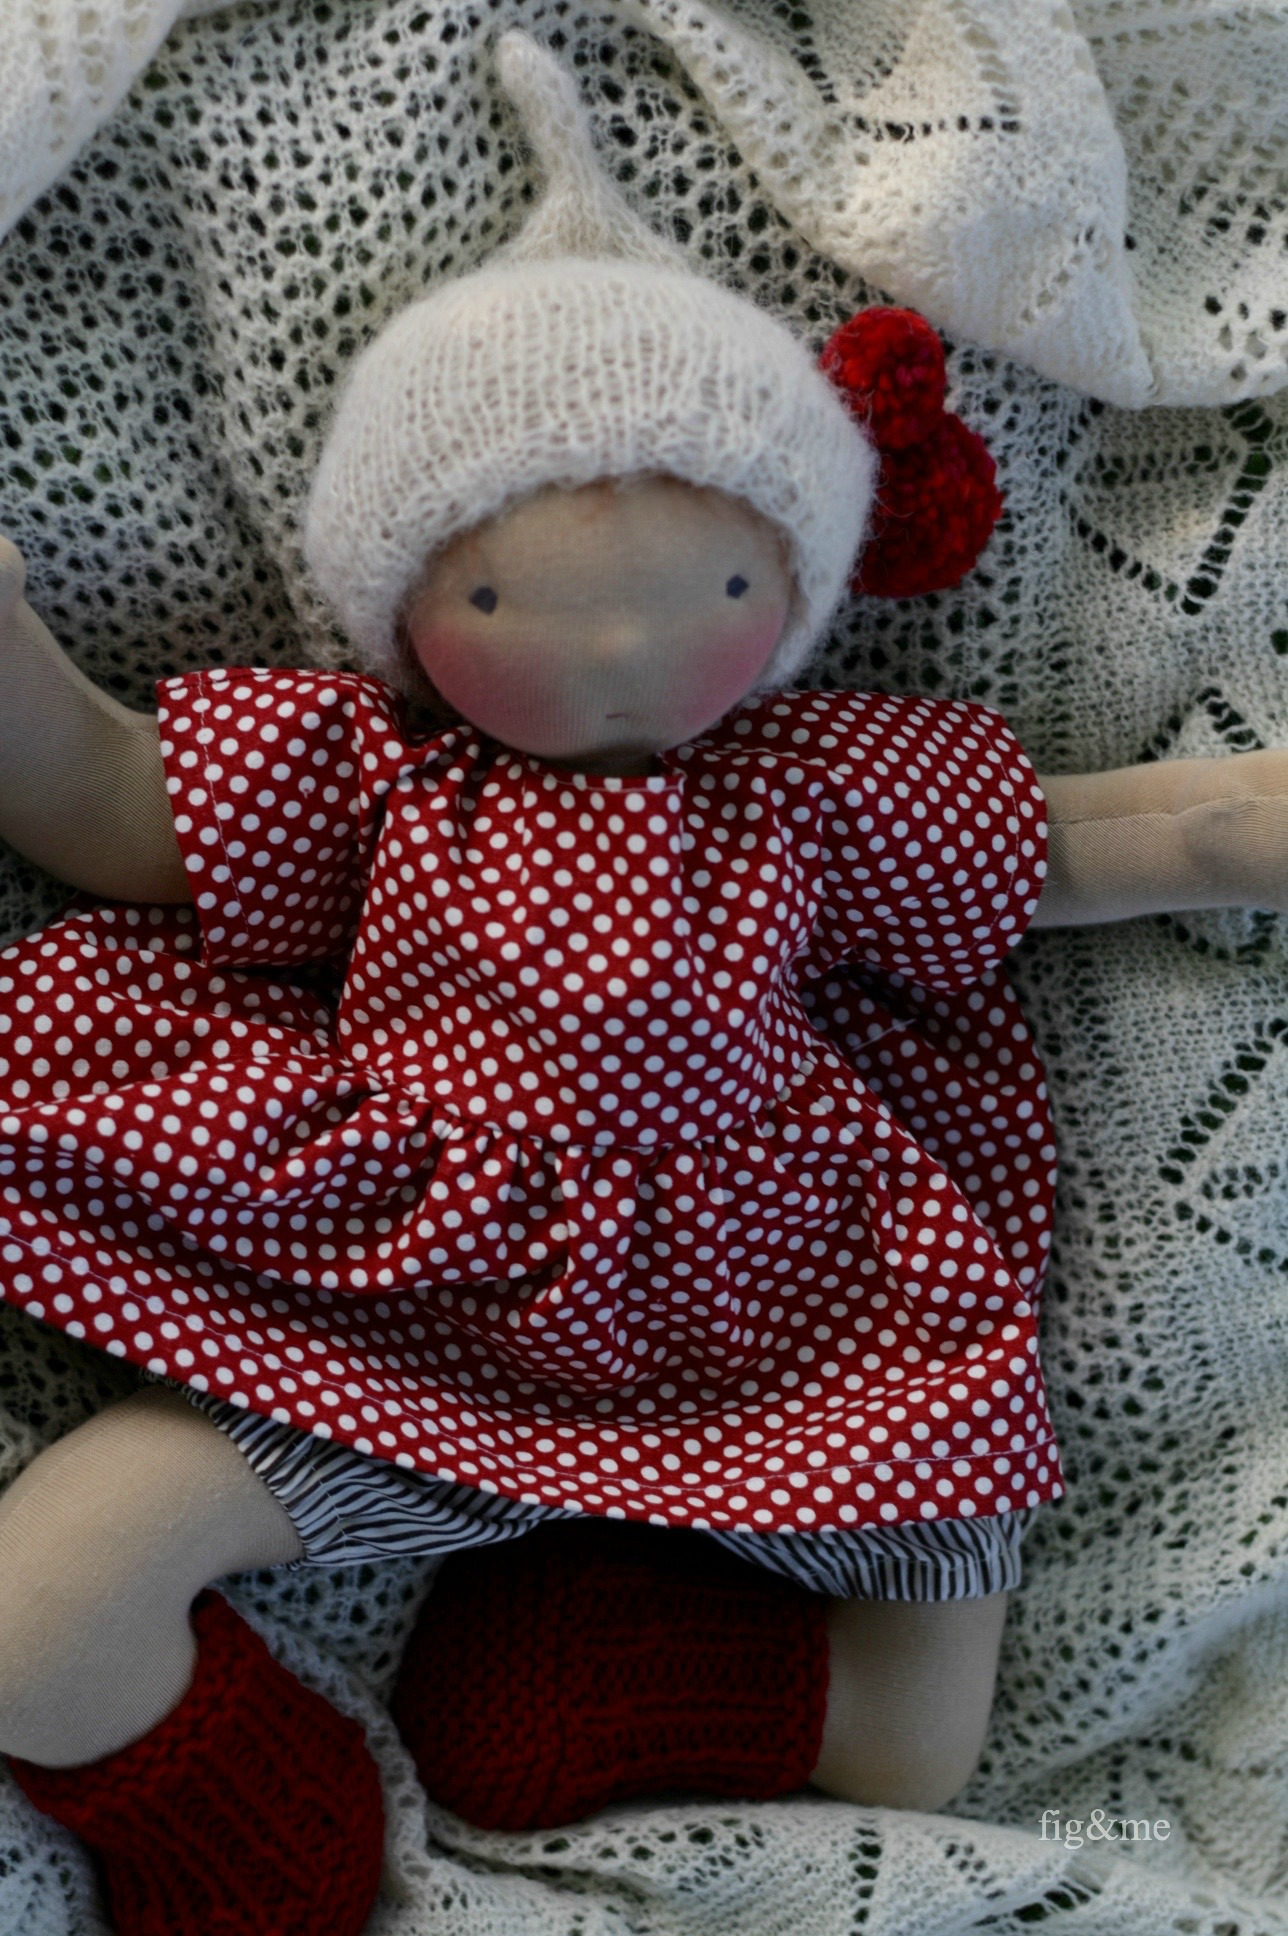 Rowanberry, a natural baby doll by Figandme.